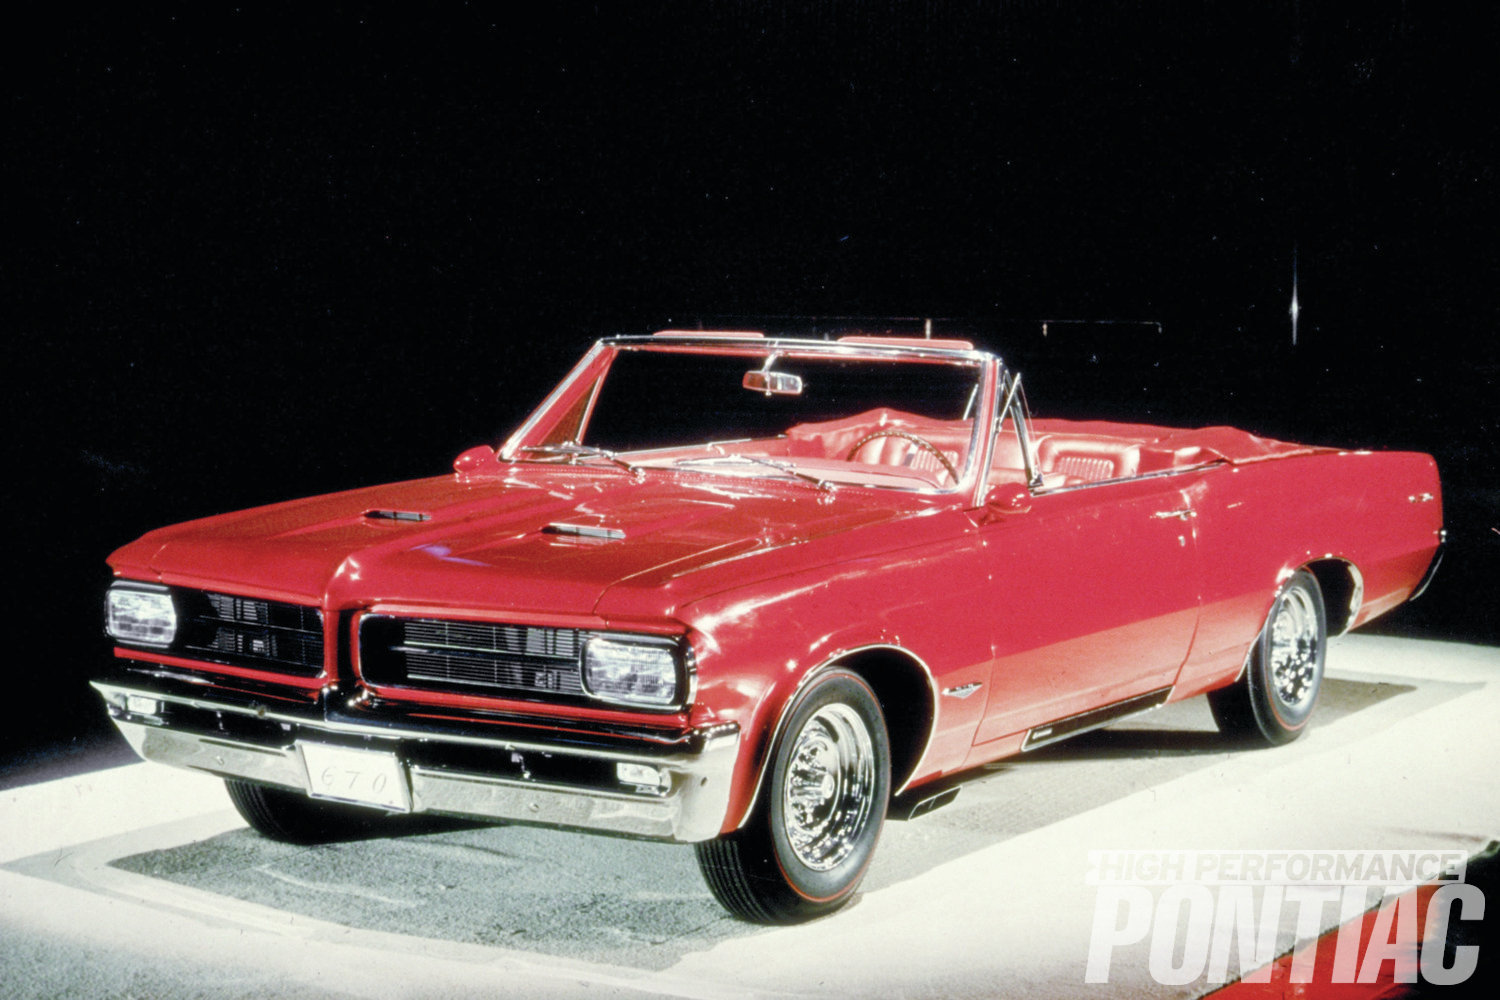 The Flamme was the first GTO show car that Pontiac ever displayed. Painted a brilliant red with a matching red interior, the GTO had many custom touches in vogue back then, including rectangular Cibie headlamps, chrome reverse wheels, and exhaust ports that exited just behind the front wheels.